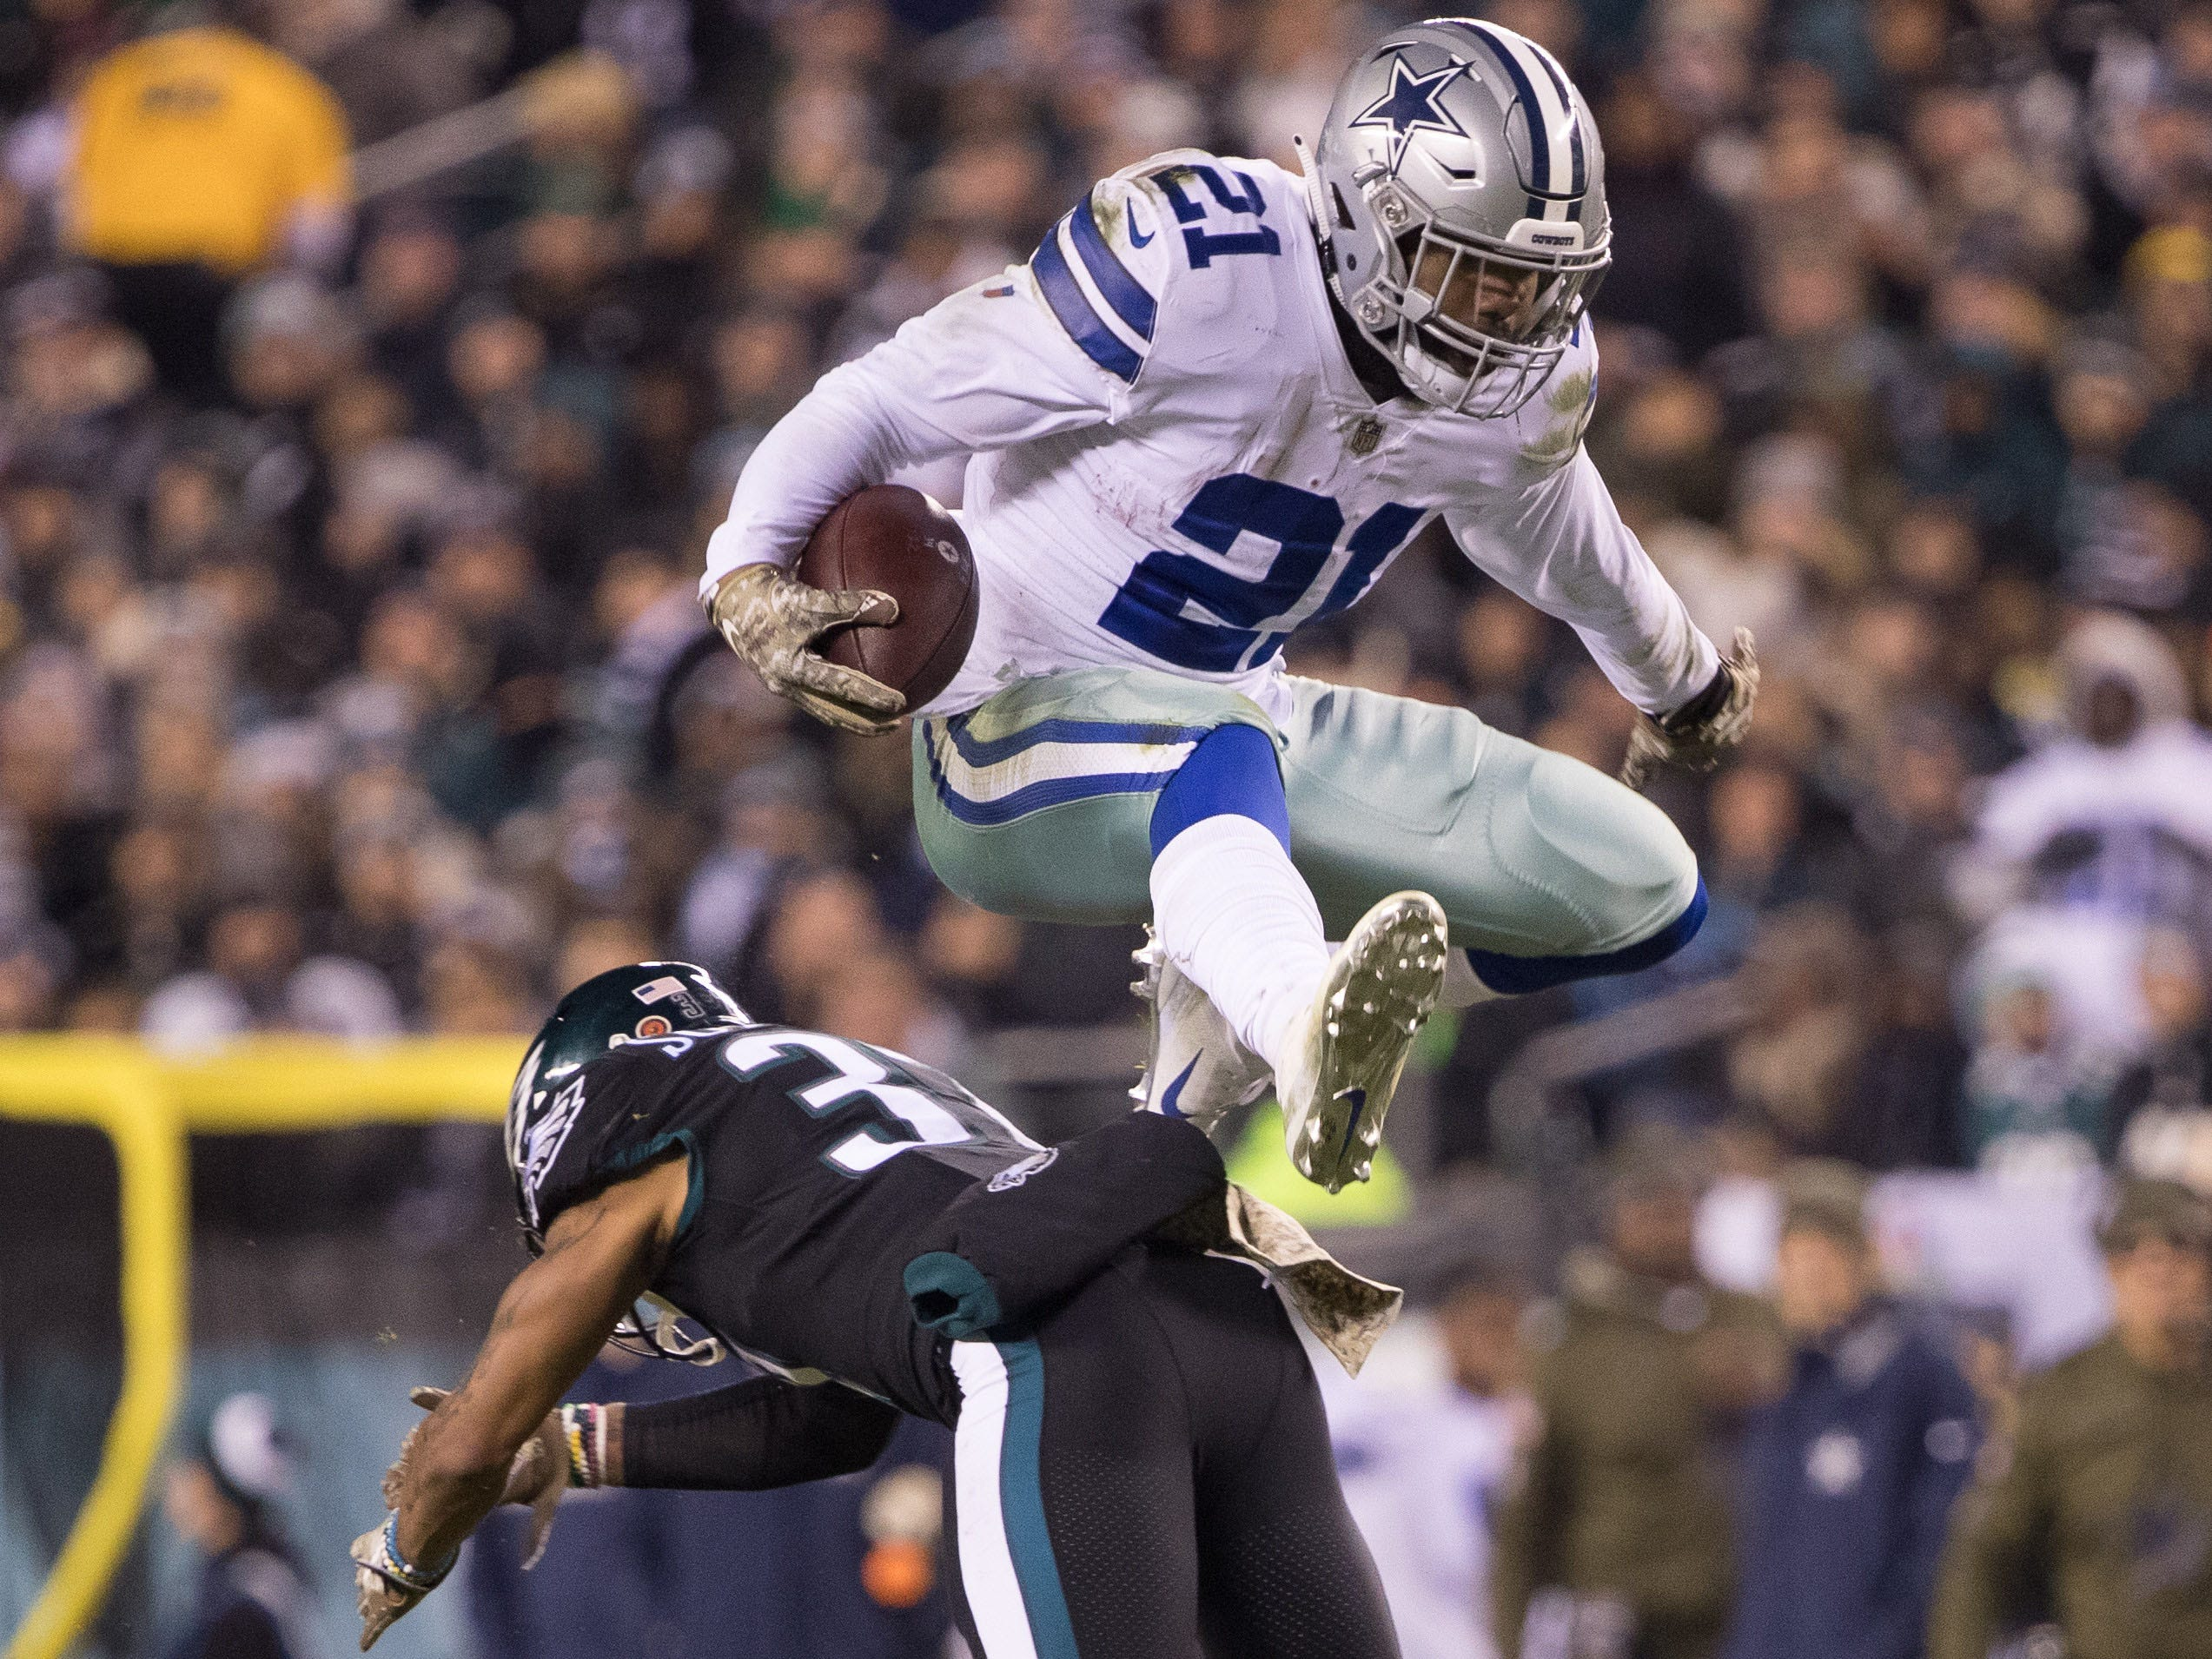 Dallas Cowboys running back Ezekiel Elliott leaps over the tackle attempt of Philadelphia Eagles defensive back Tre Sullivan during the second quarter at Lincoln Financial Field.